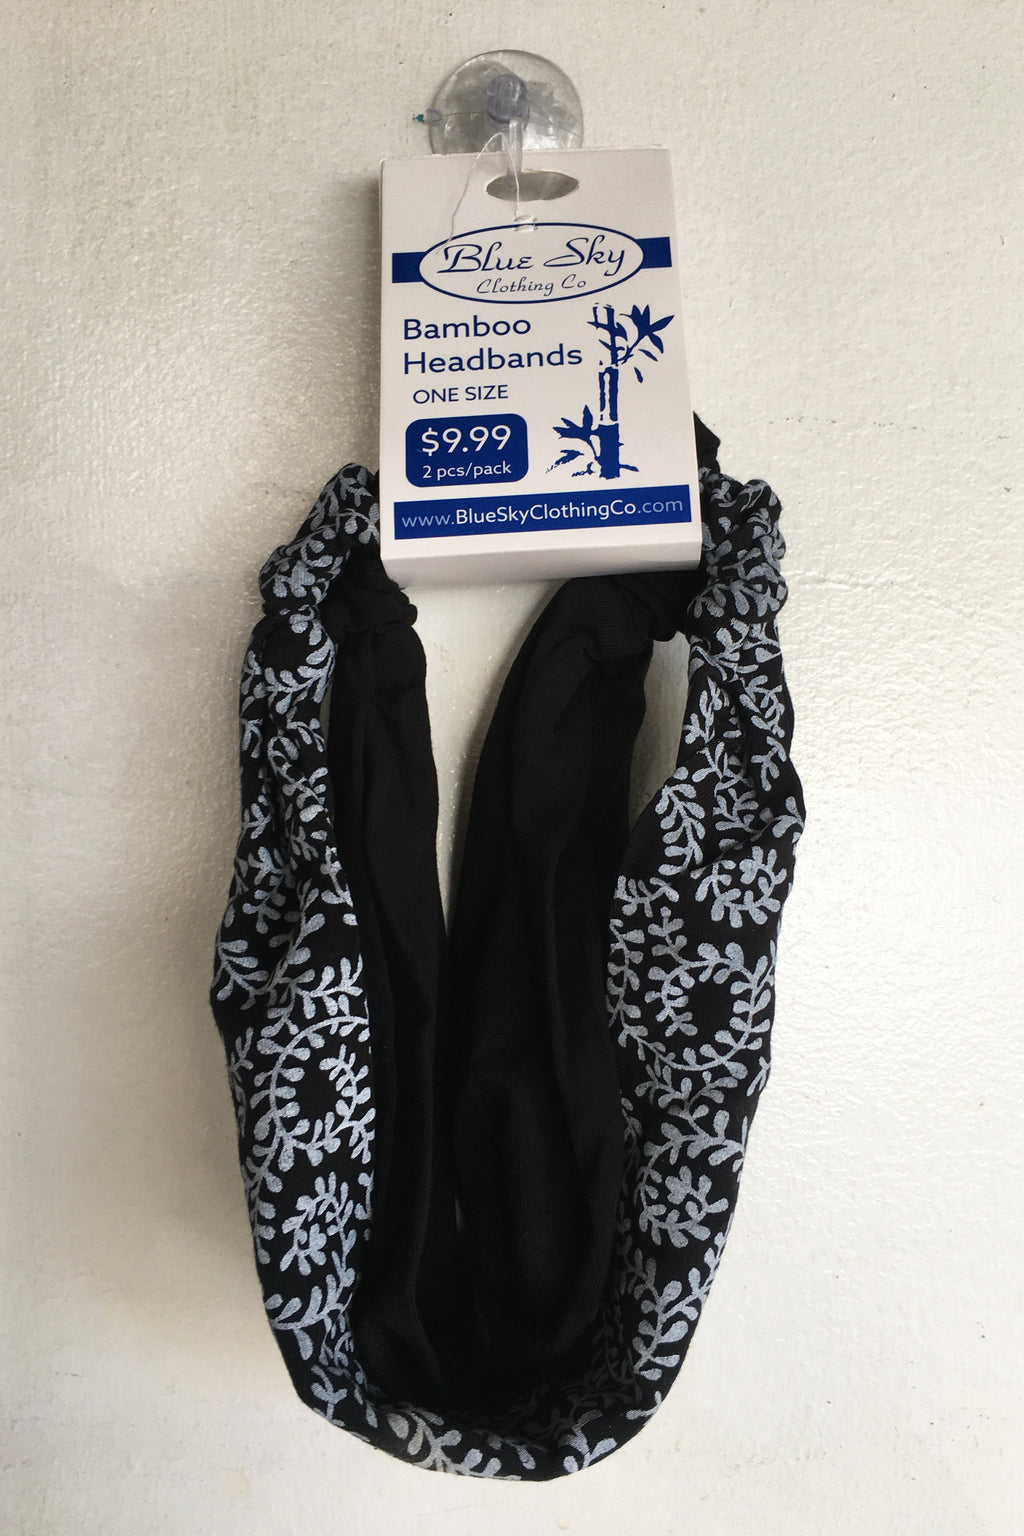 Bamboo Headbands, Black/White Bishan - Blue Sky Clothing Co